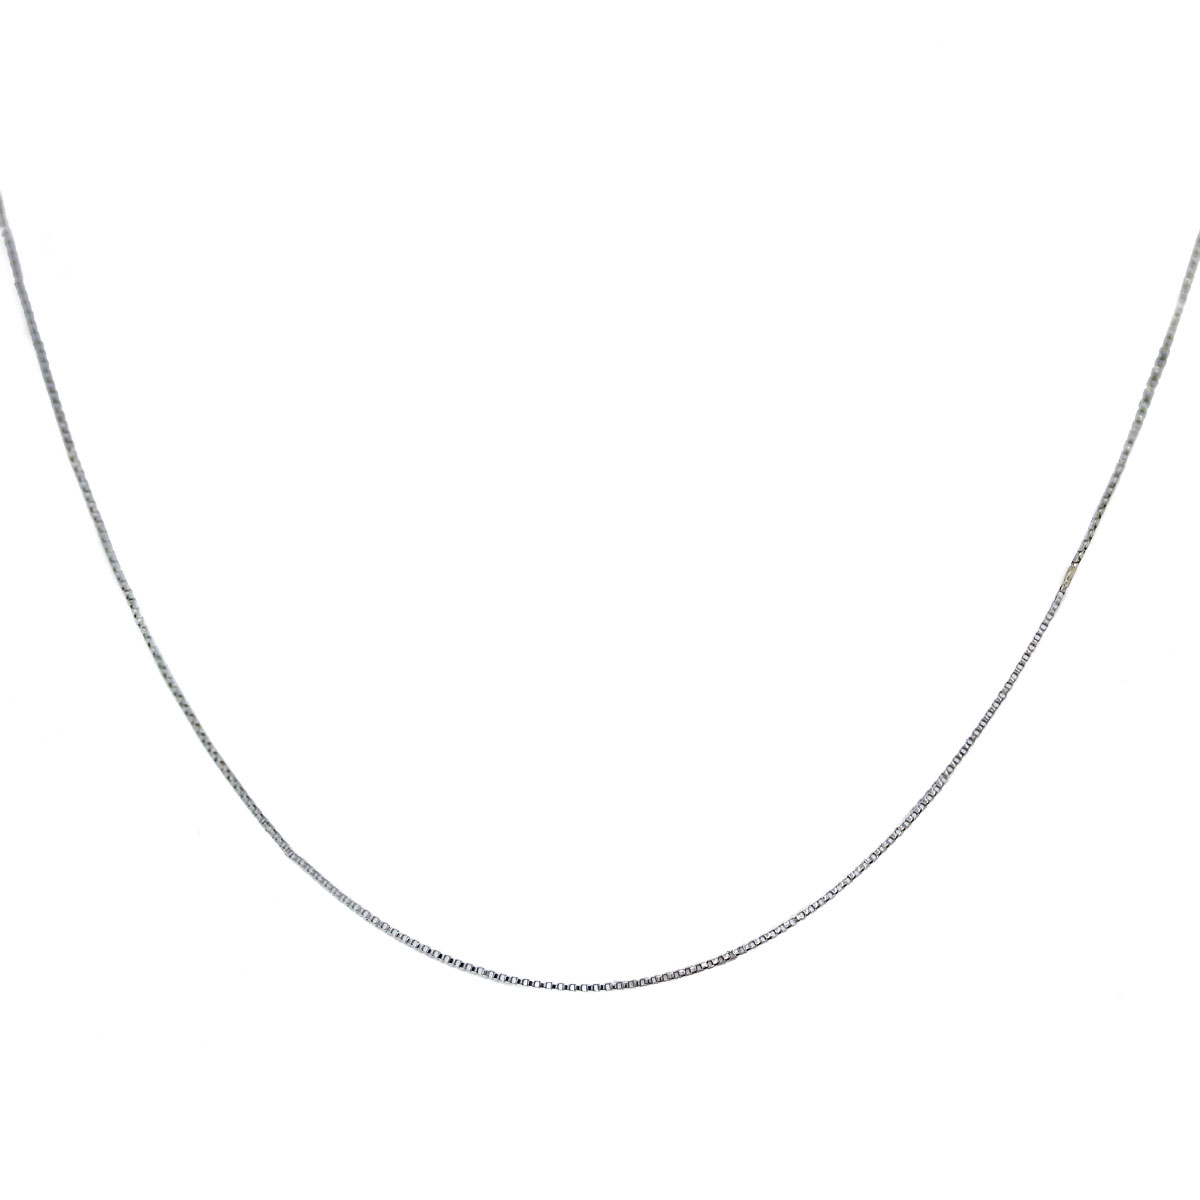 You Are Viewing This 14K White Gold Chain Necklace!